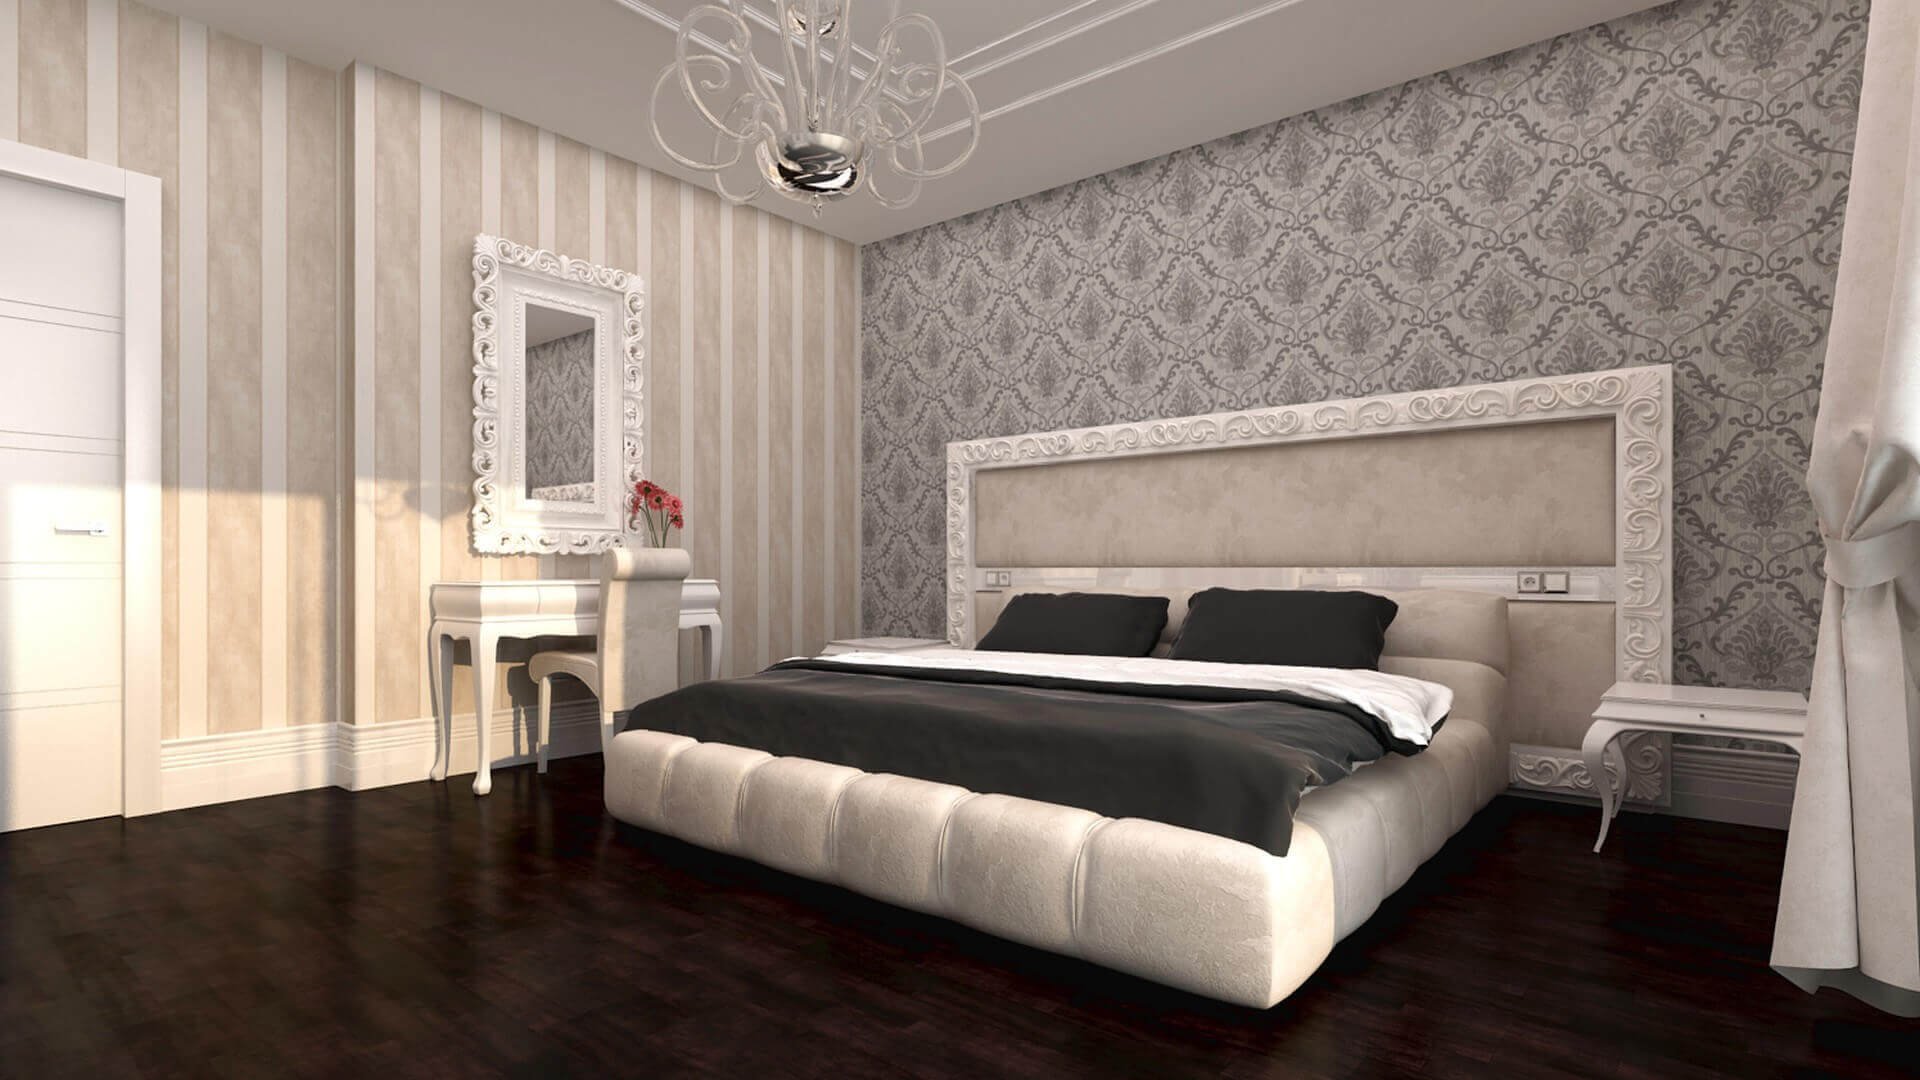 Ankorman Evleri 2867 Private Project Residential